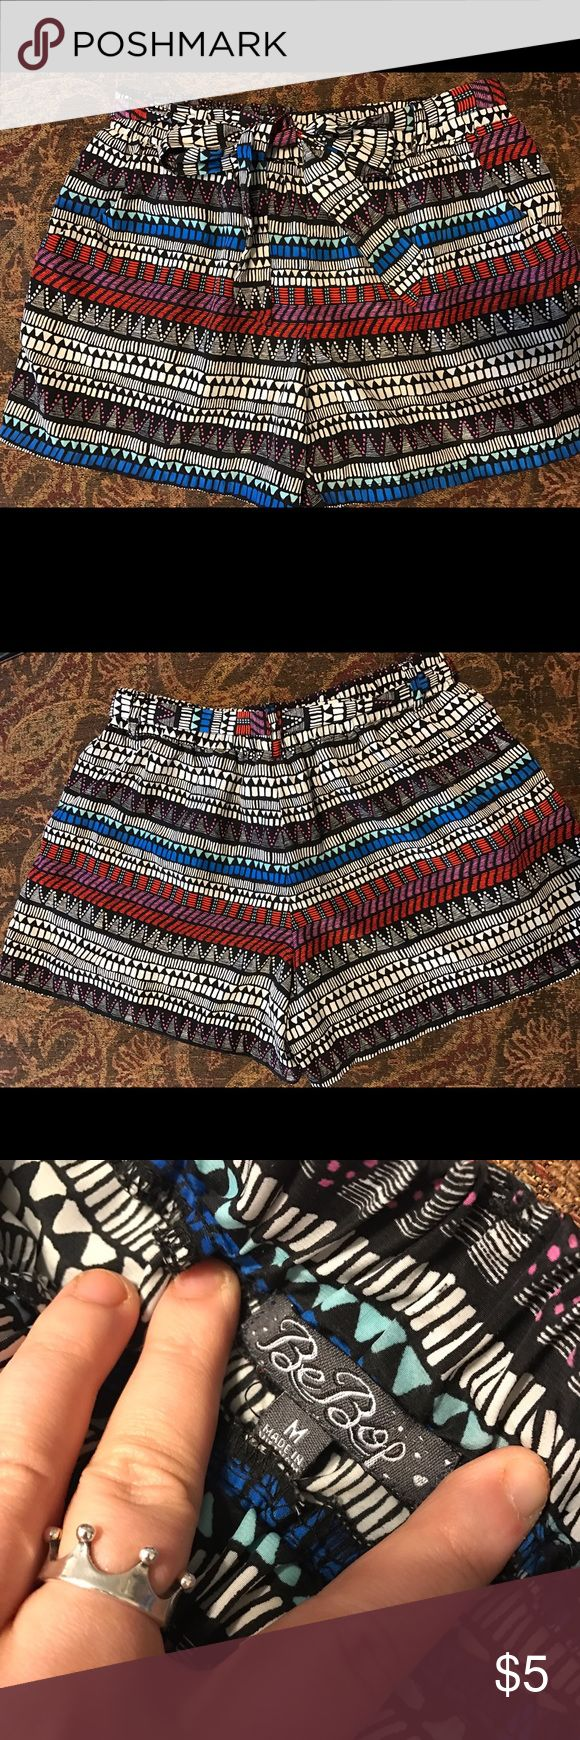 Printed Aztec Shorts Super cute Aztec shorts! This print is fabulous, has a matching belt that ties into a bow! The material is a silky texture Shorts